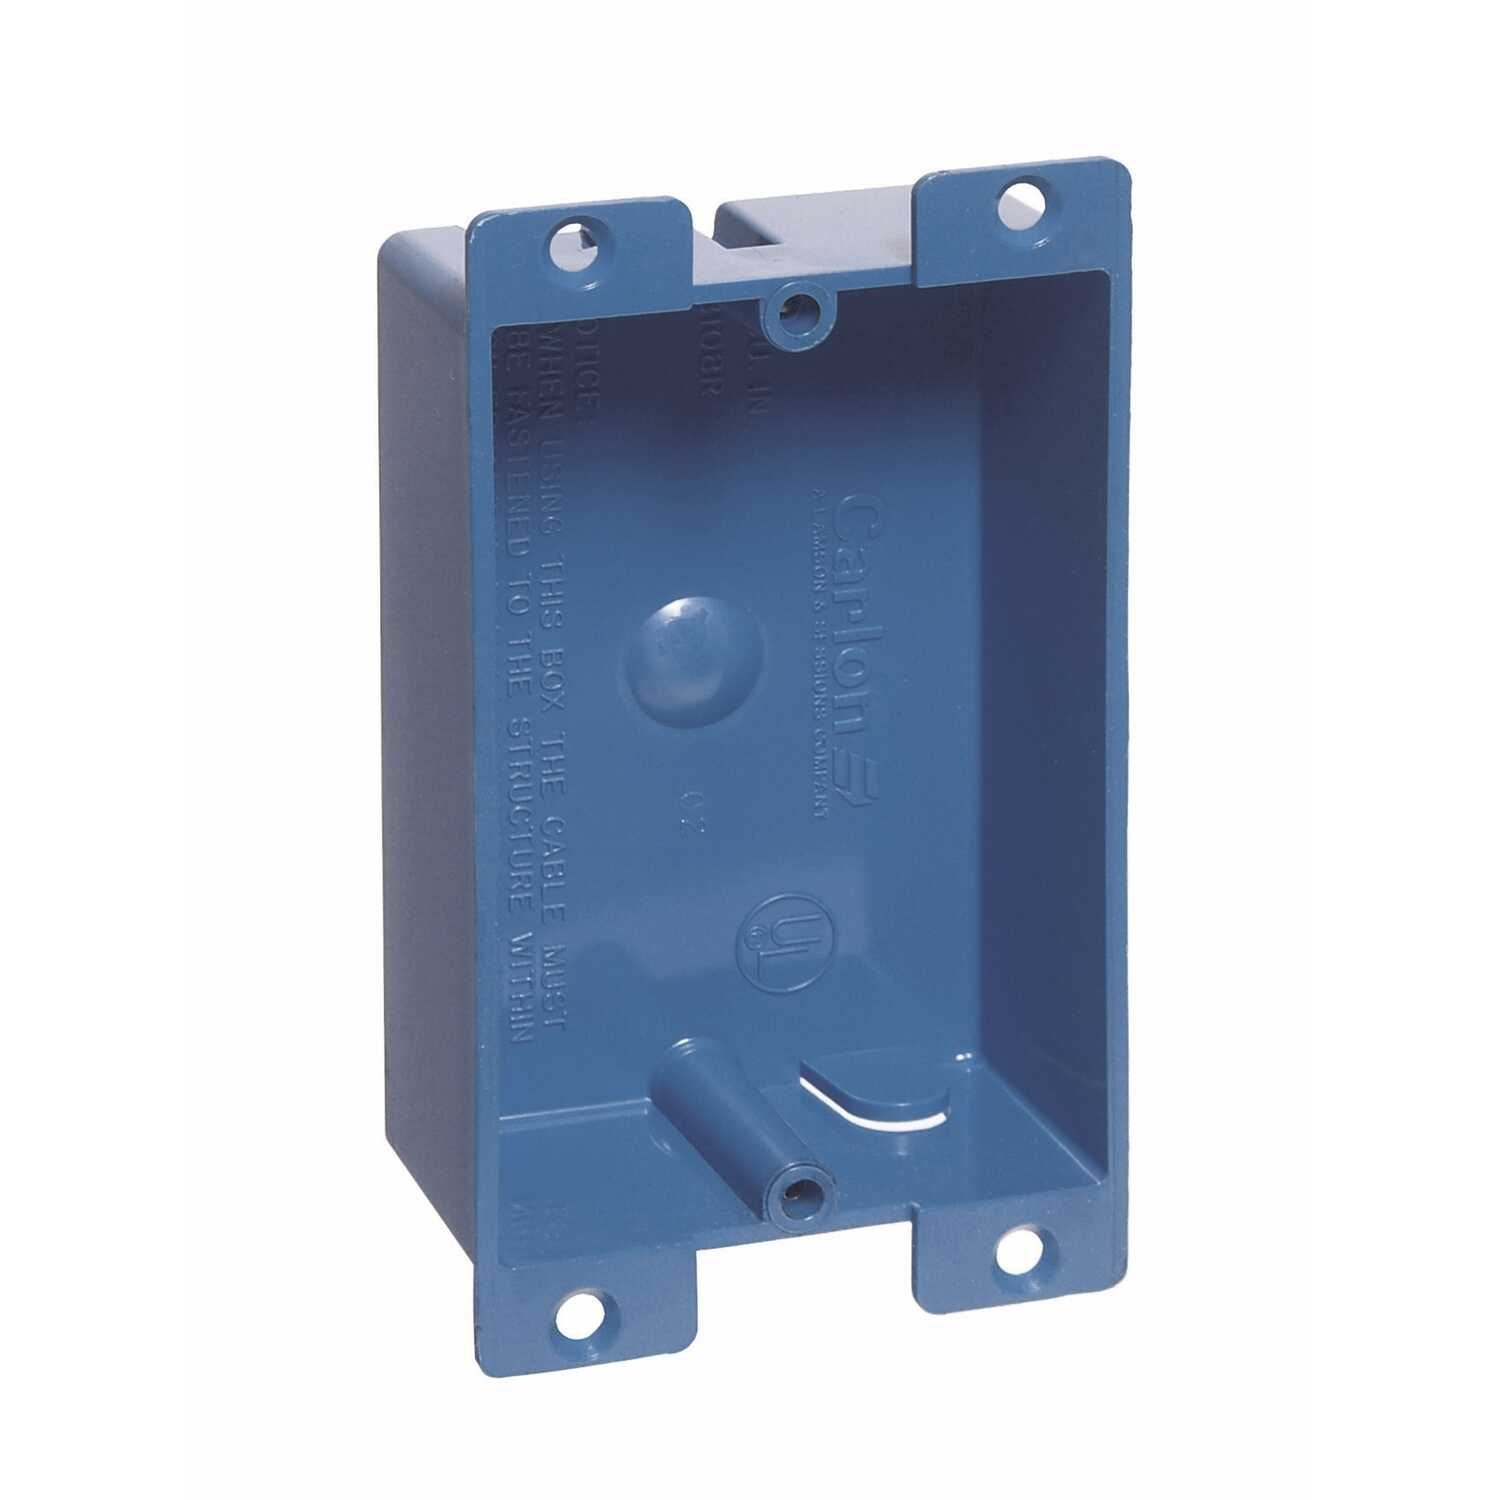 Carlon 3-5/8 in  Rectangle PVC 1 Gang Outlet Box Blue - Ace